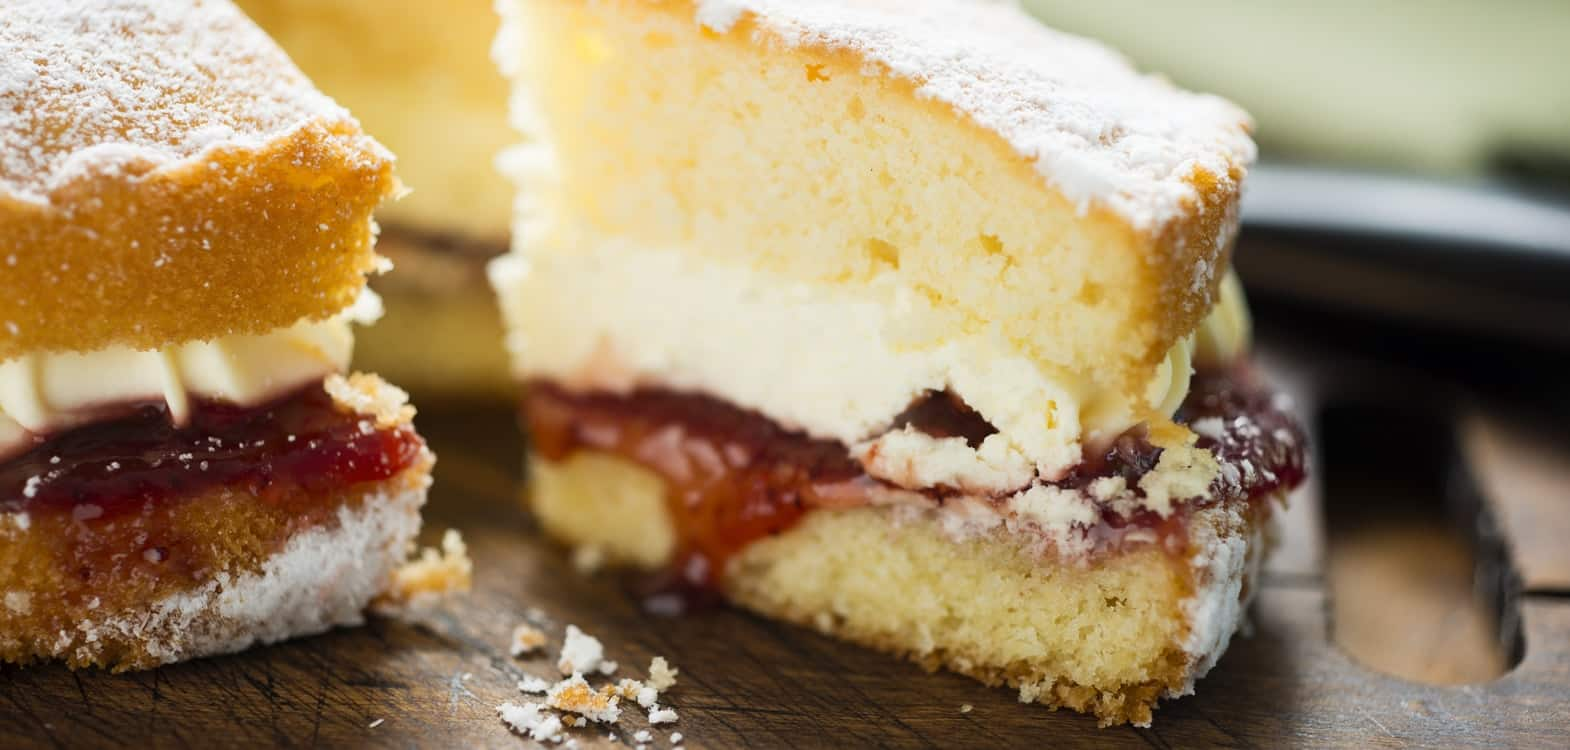 Victoria sandwich sponge cake slice with cream and jam, served at Firhall Highland B&B